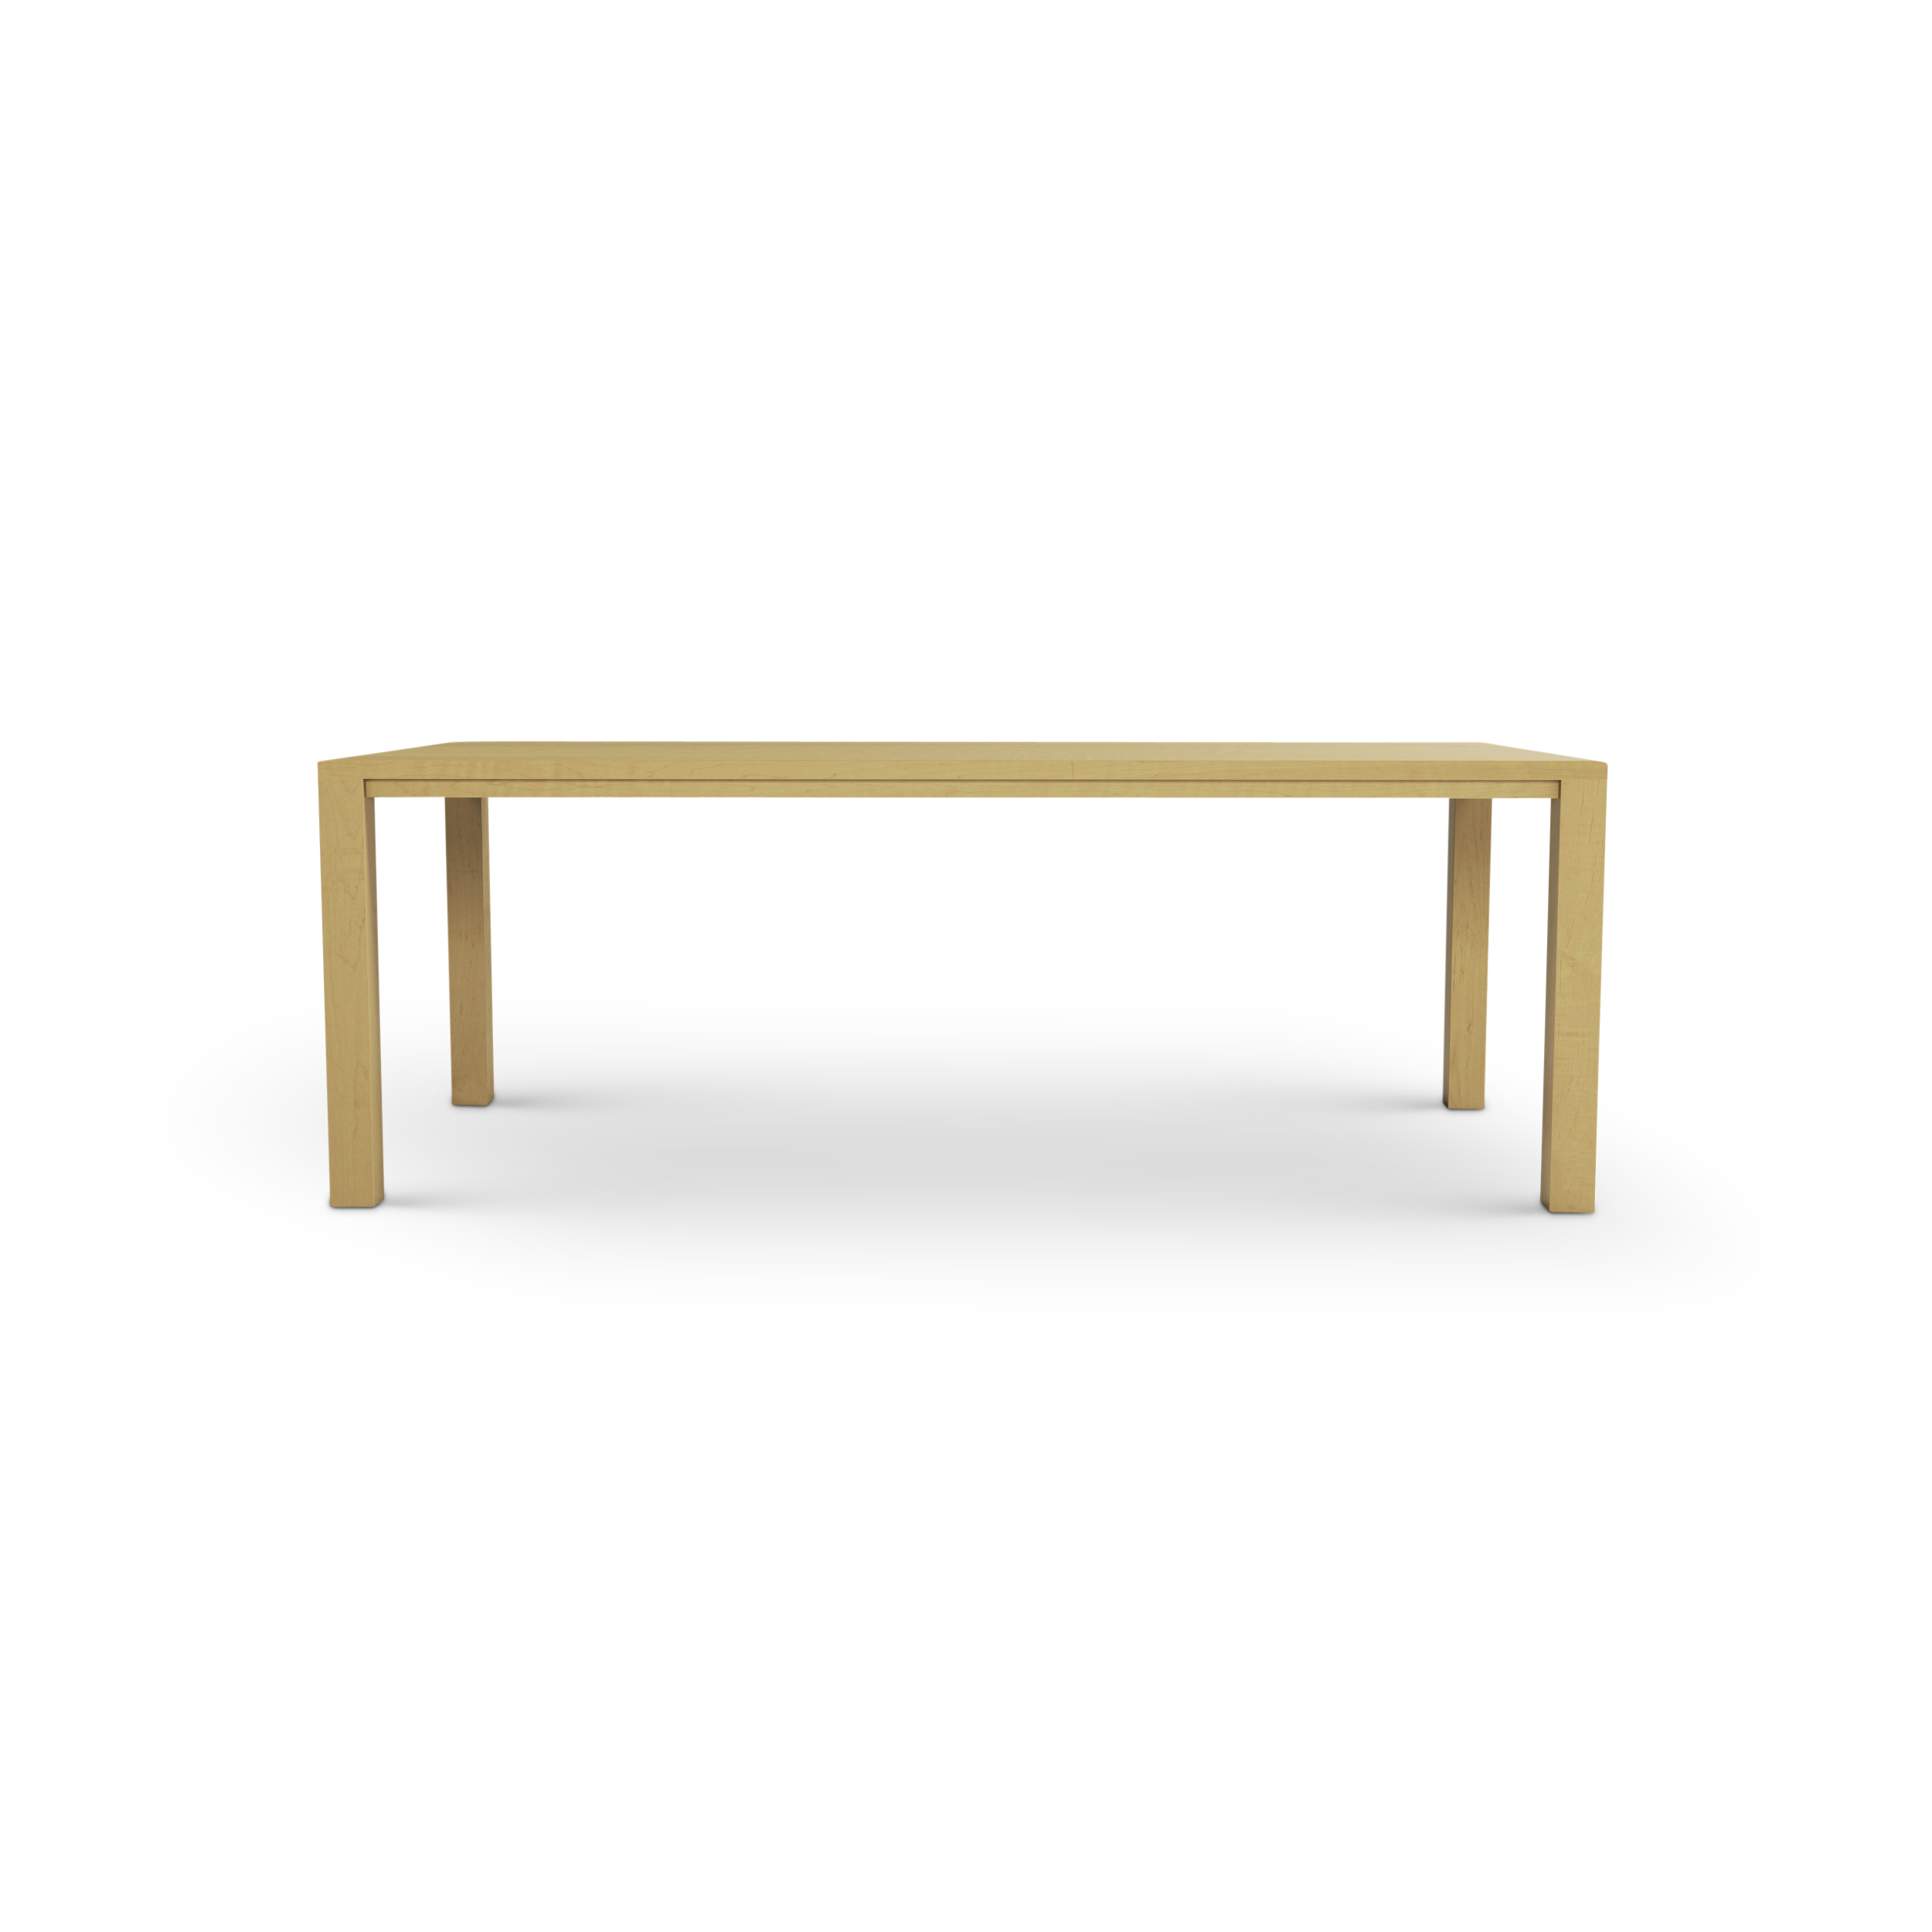 Series 323 84″ Table